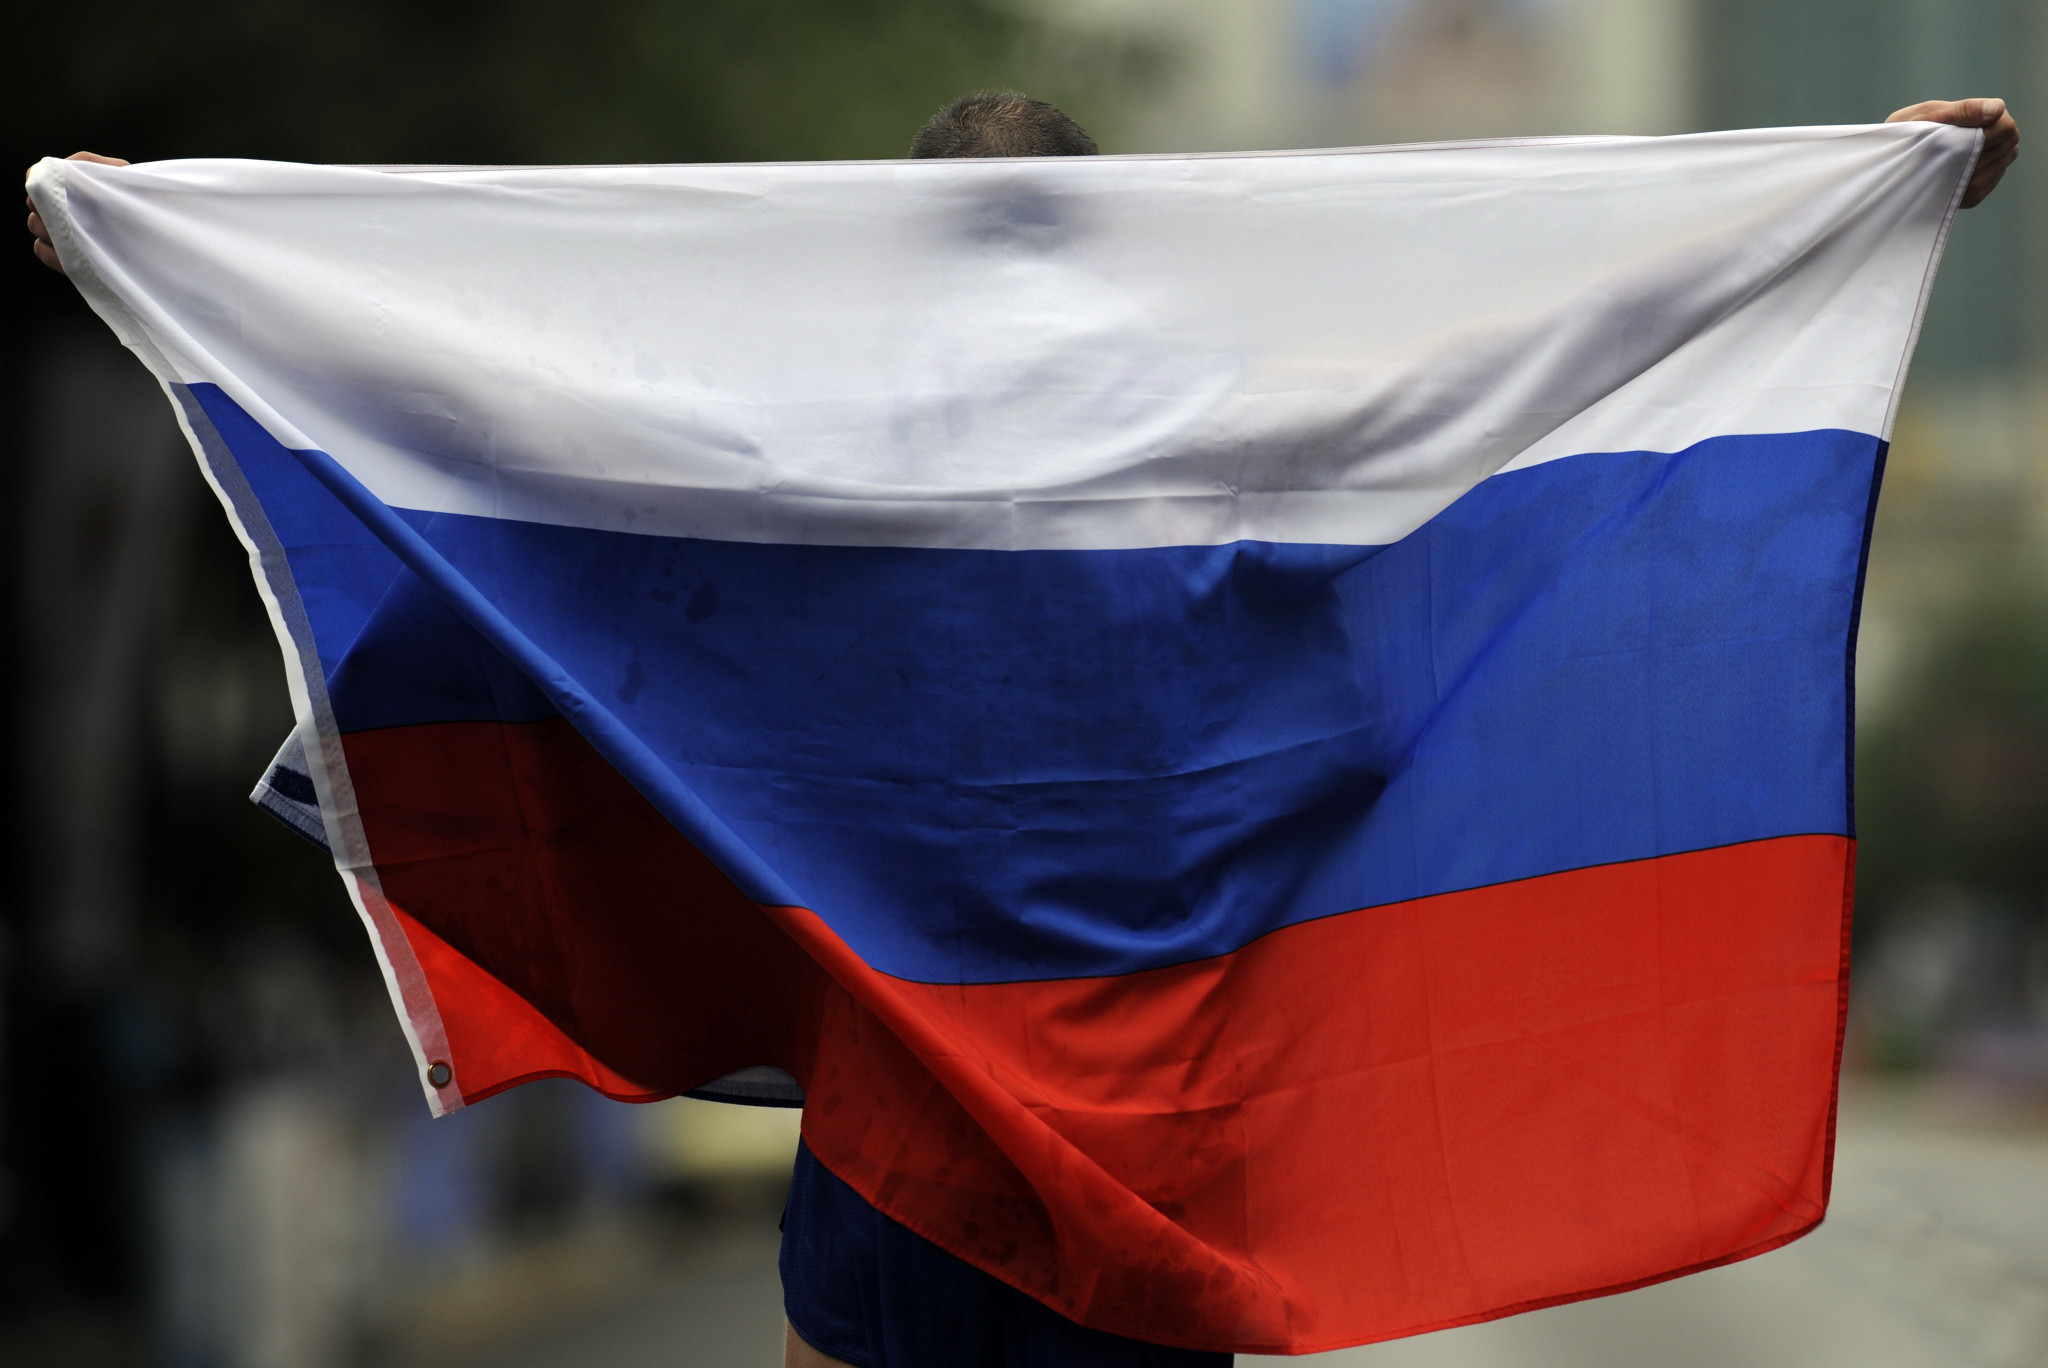 Russia has adopted a zero-tolerance policy on doping and is working to introduce education from a young age ©Russian Sports Ministry